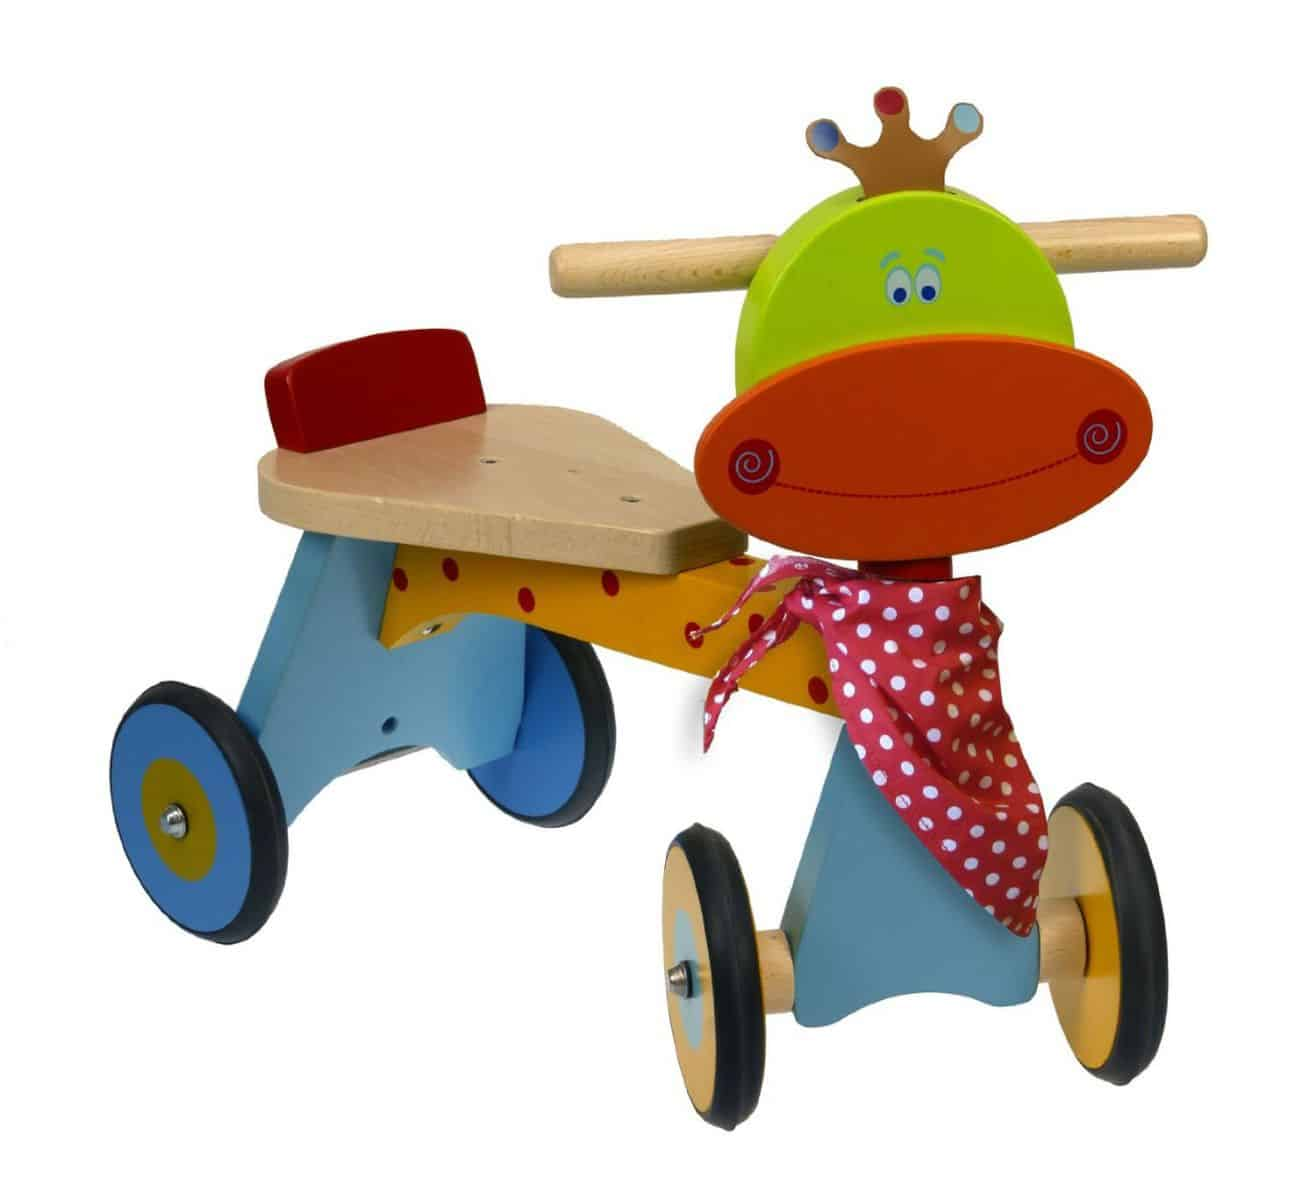 Push Toys For Toddlers : Hello wonderful starter wooden ride on toys for toddlers